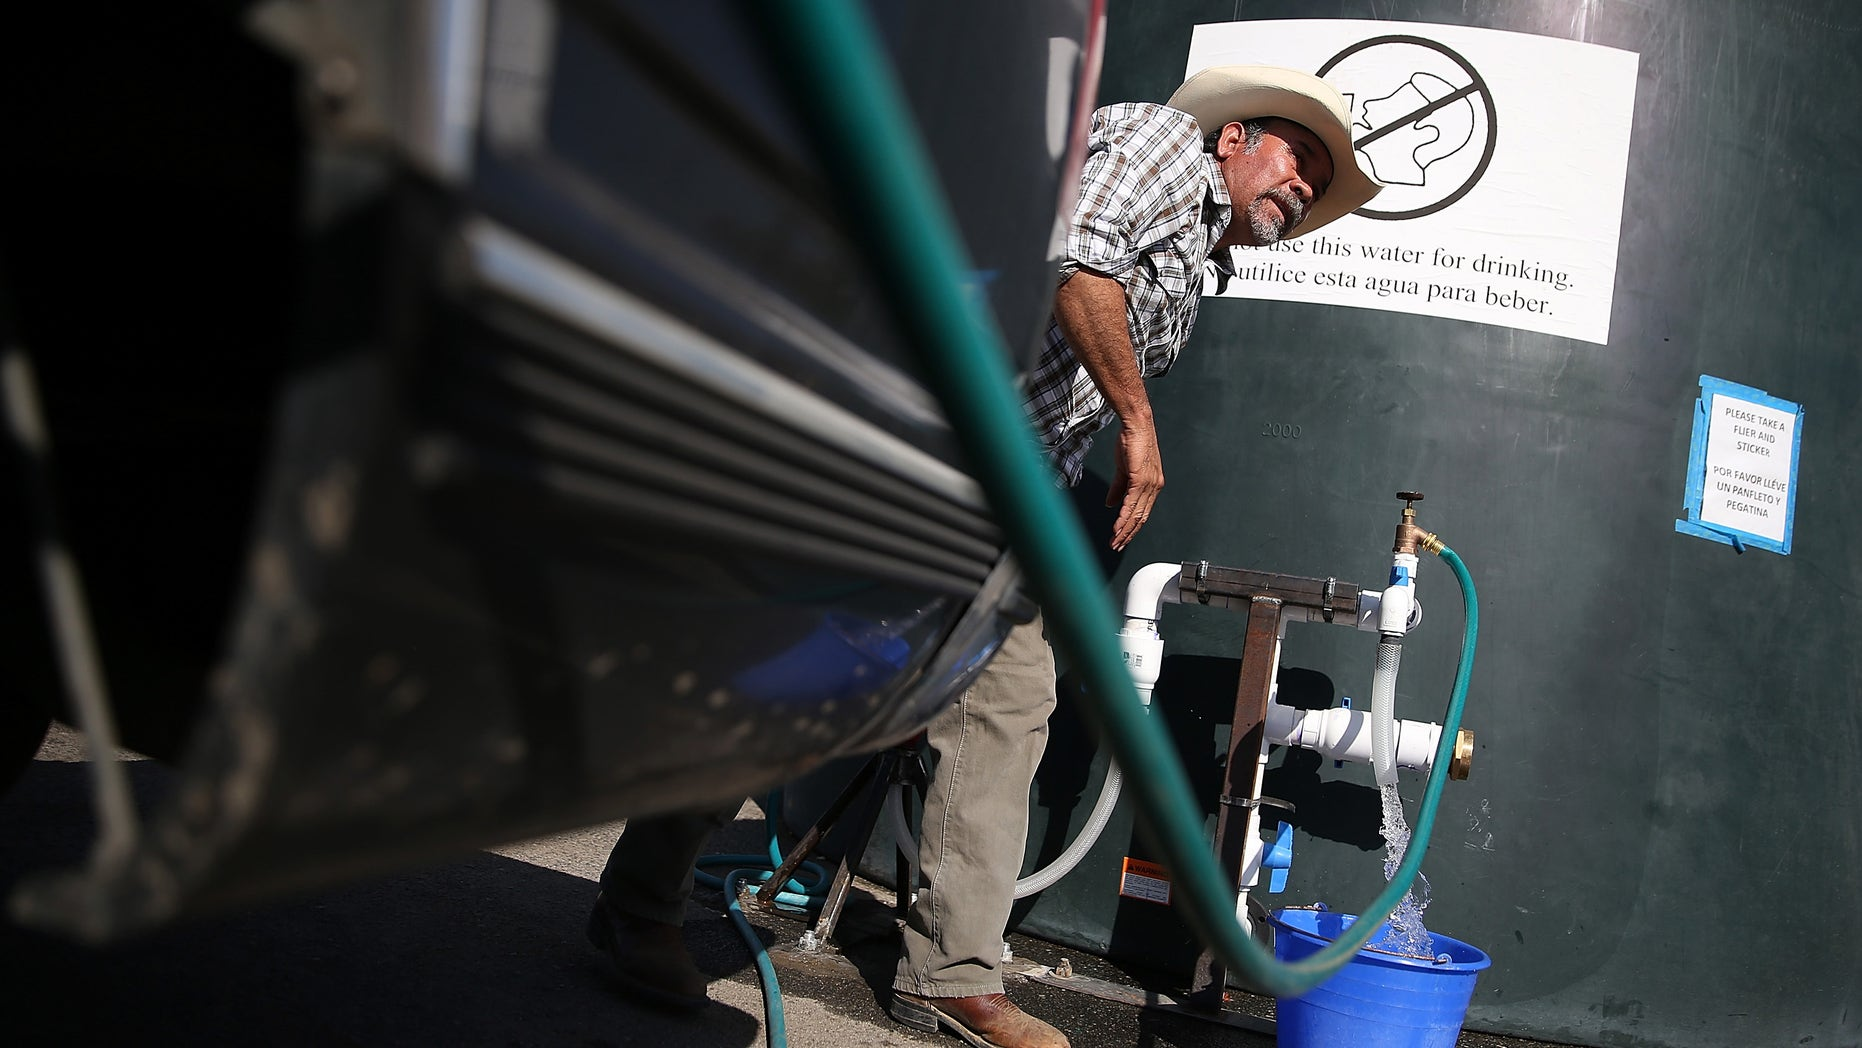 PORTERVILLE, CA - SEPTEMBER 04:  Mario Garcia fills buckets with non-potable water from a tank set up in front of the Doyle Colony Fire Station on September 4, 2014 in Porterville, California. More than 300 homes in the California central valley city of Porterville have been without running water for weeks after their wells ran dry due to the severe drought. County officials and charitable organizations are providing drinking water and non-potable water for use in washing dishes and bathing.  (Photo by Justin Sullivan/Getty Images)